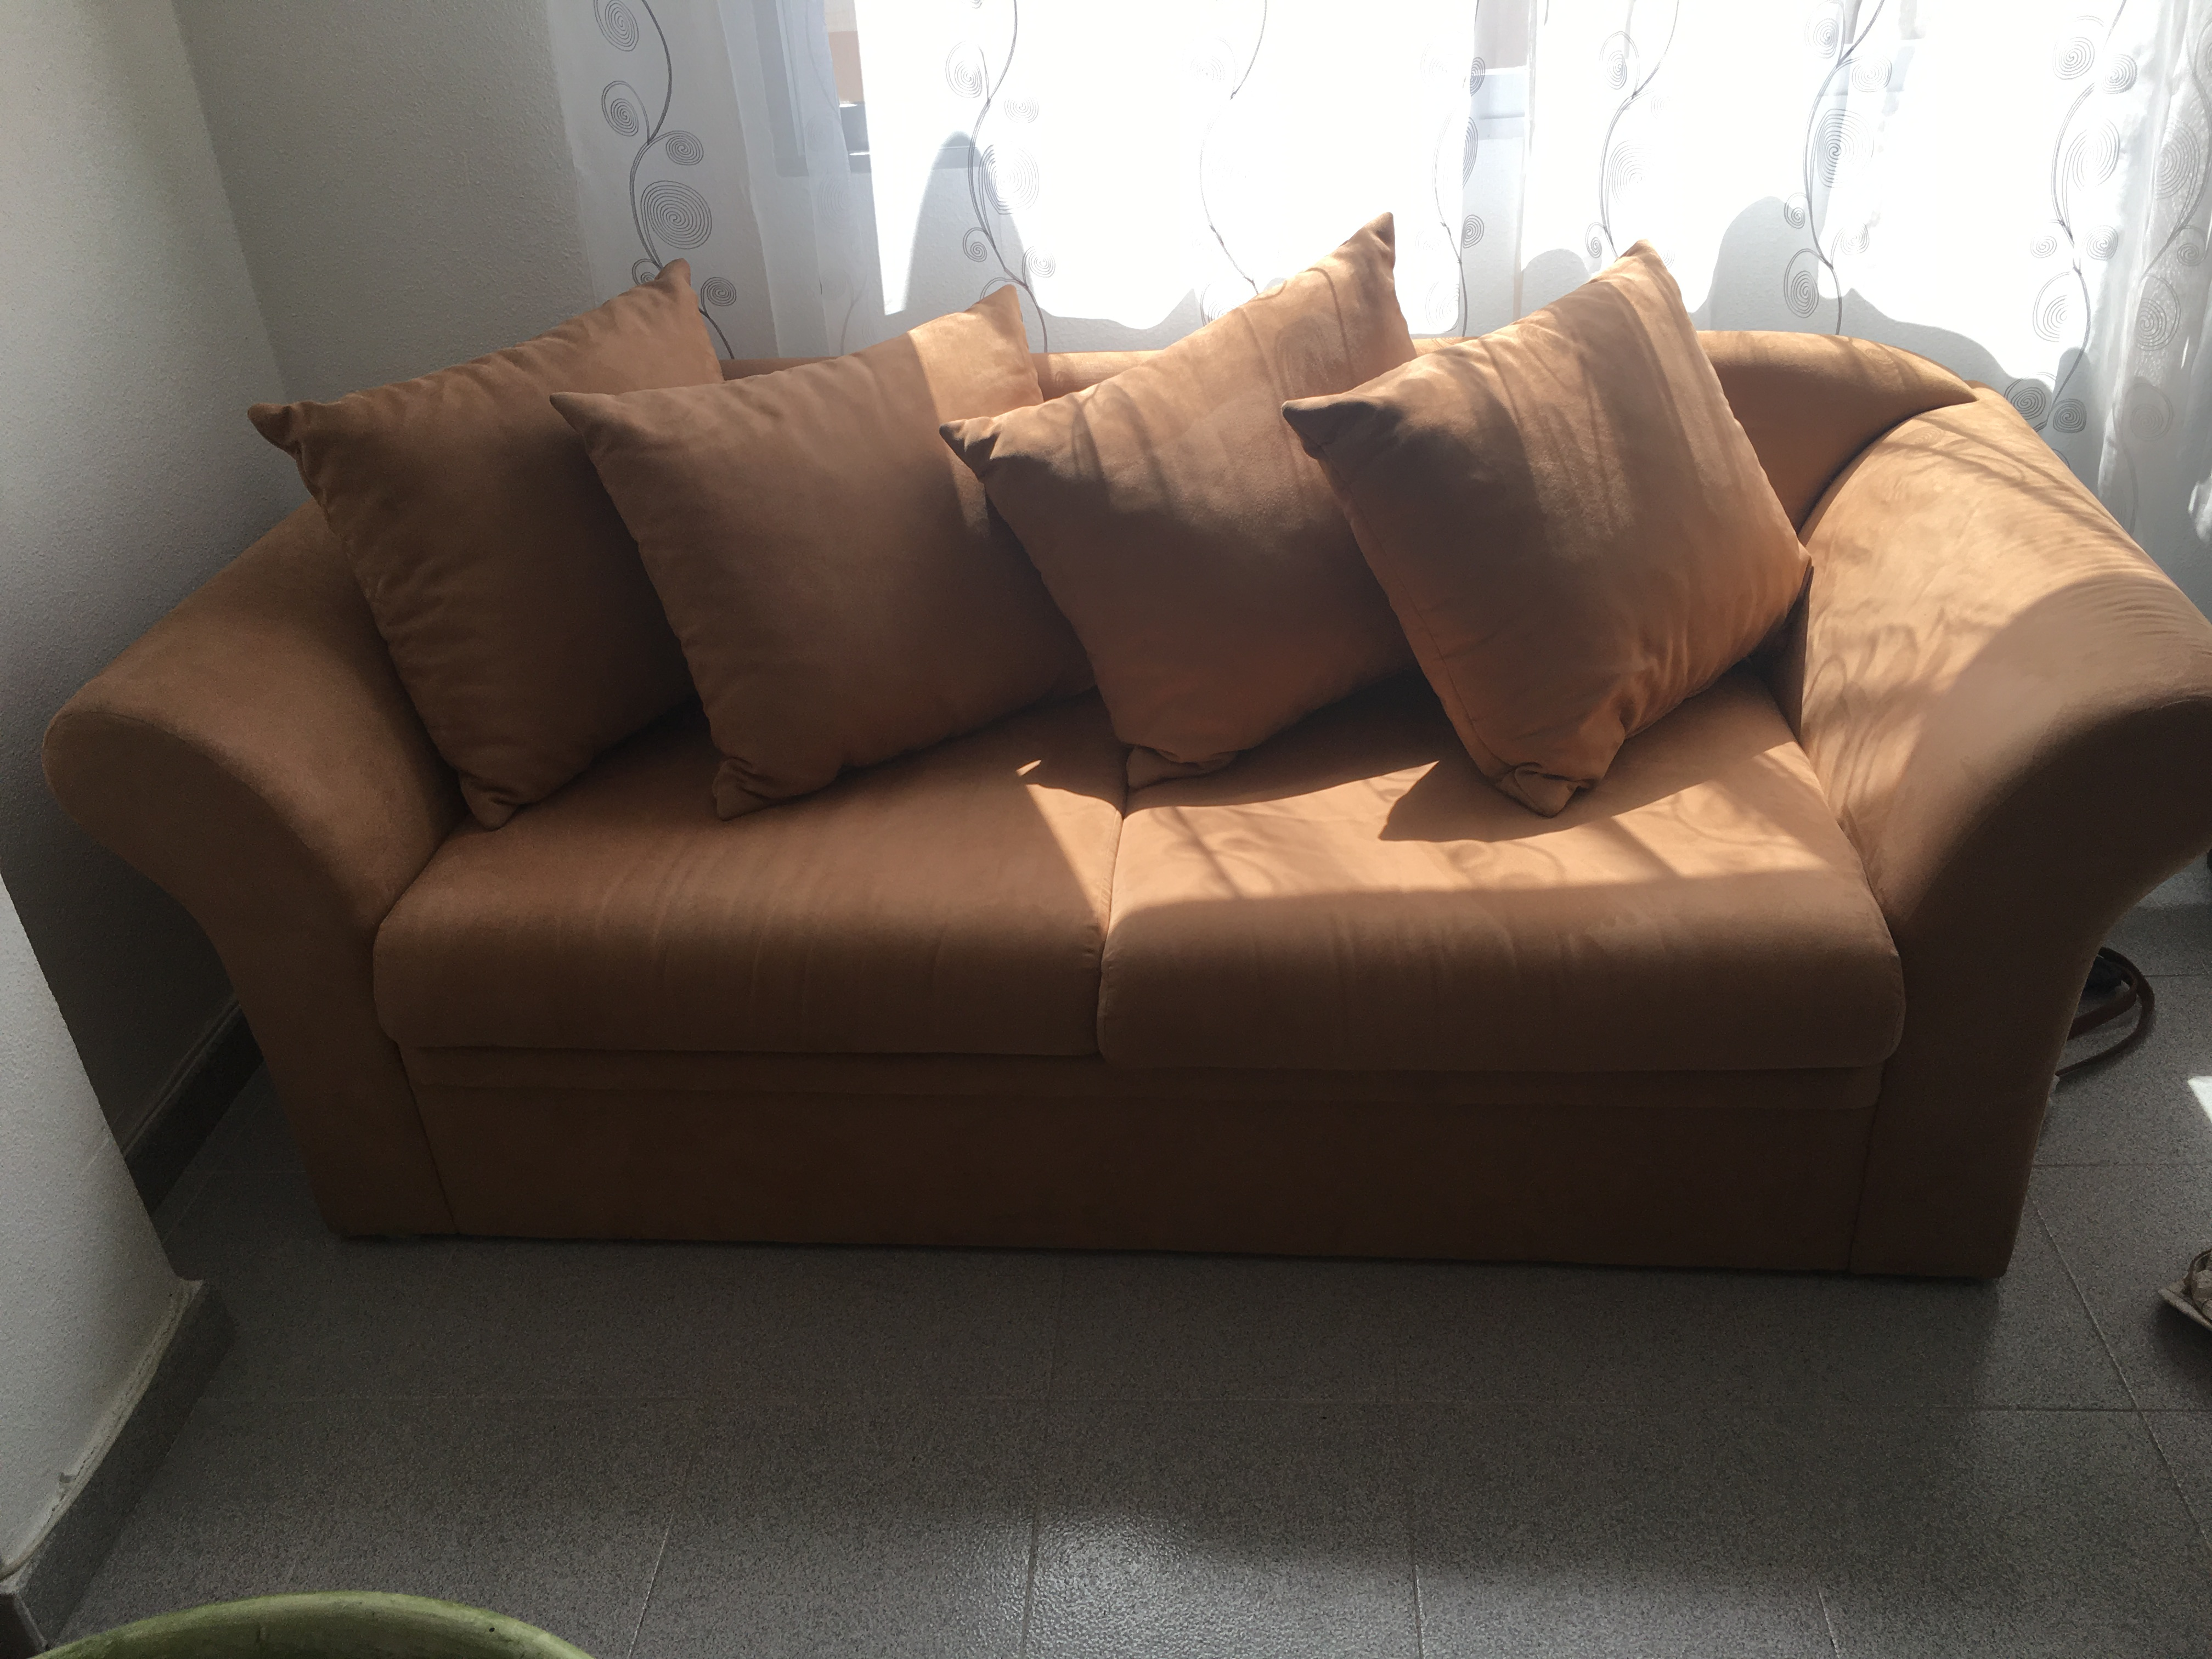 Remarkable For Sale Large Comfy Sofa Buy And Sell Items In Spiritservingveterans Wood Chair Design Ideas Spiritservingveteransorg